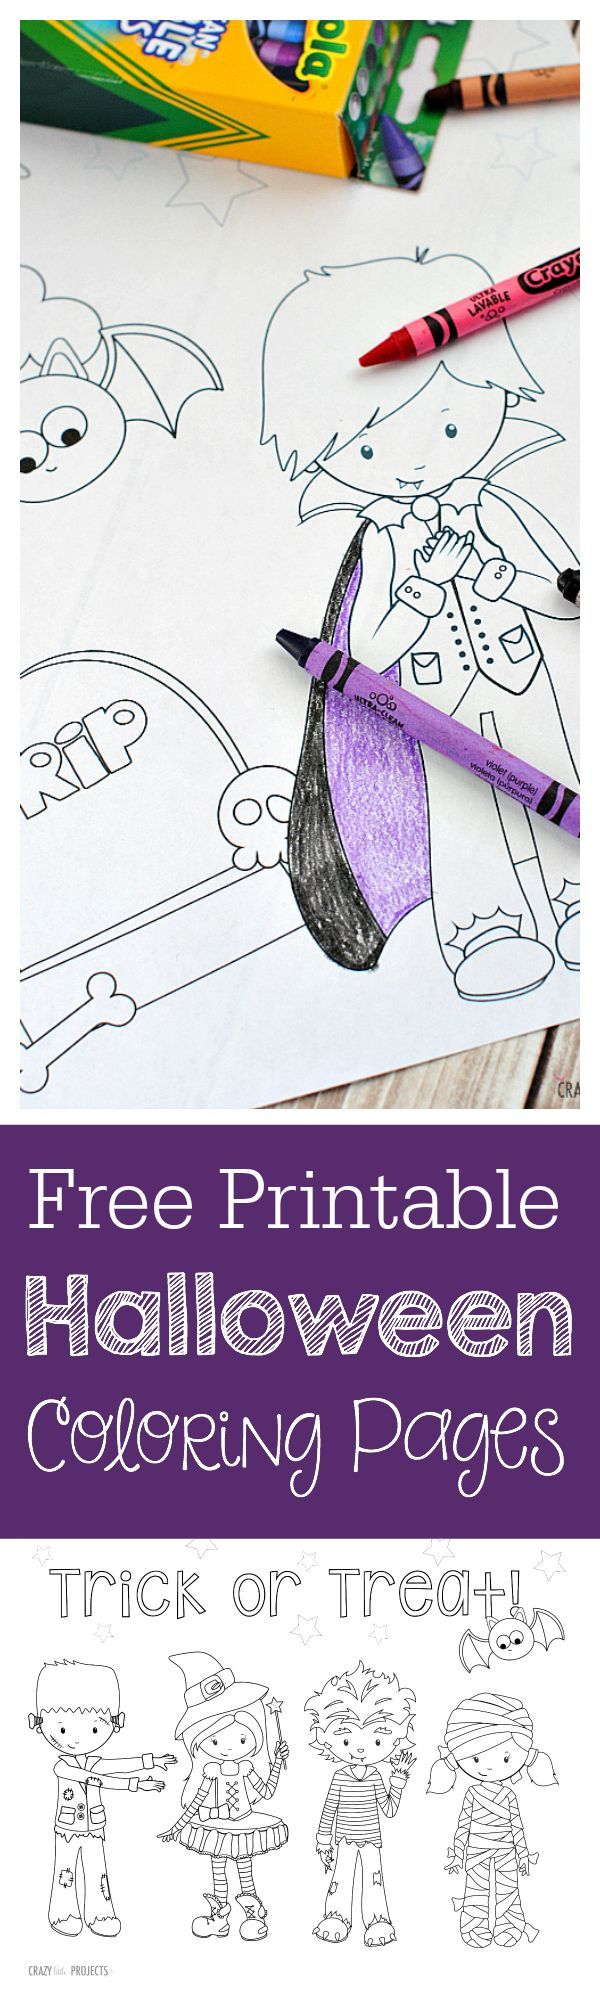 Ha halloween coloring pages to print and cut out - Free Printable Halloween Coloring Pages